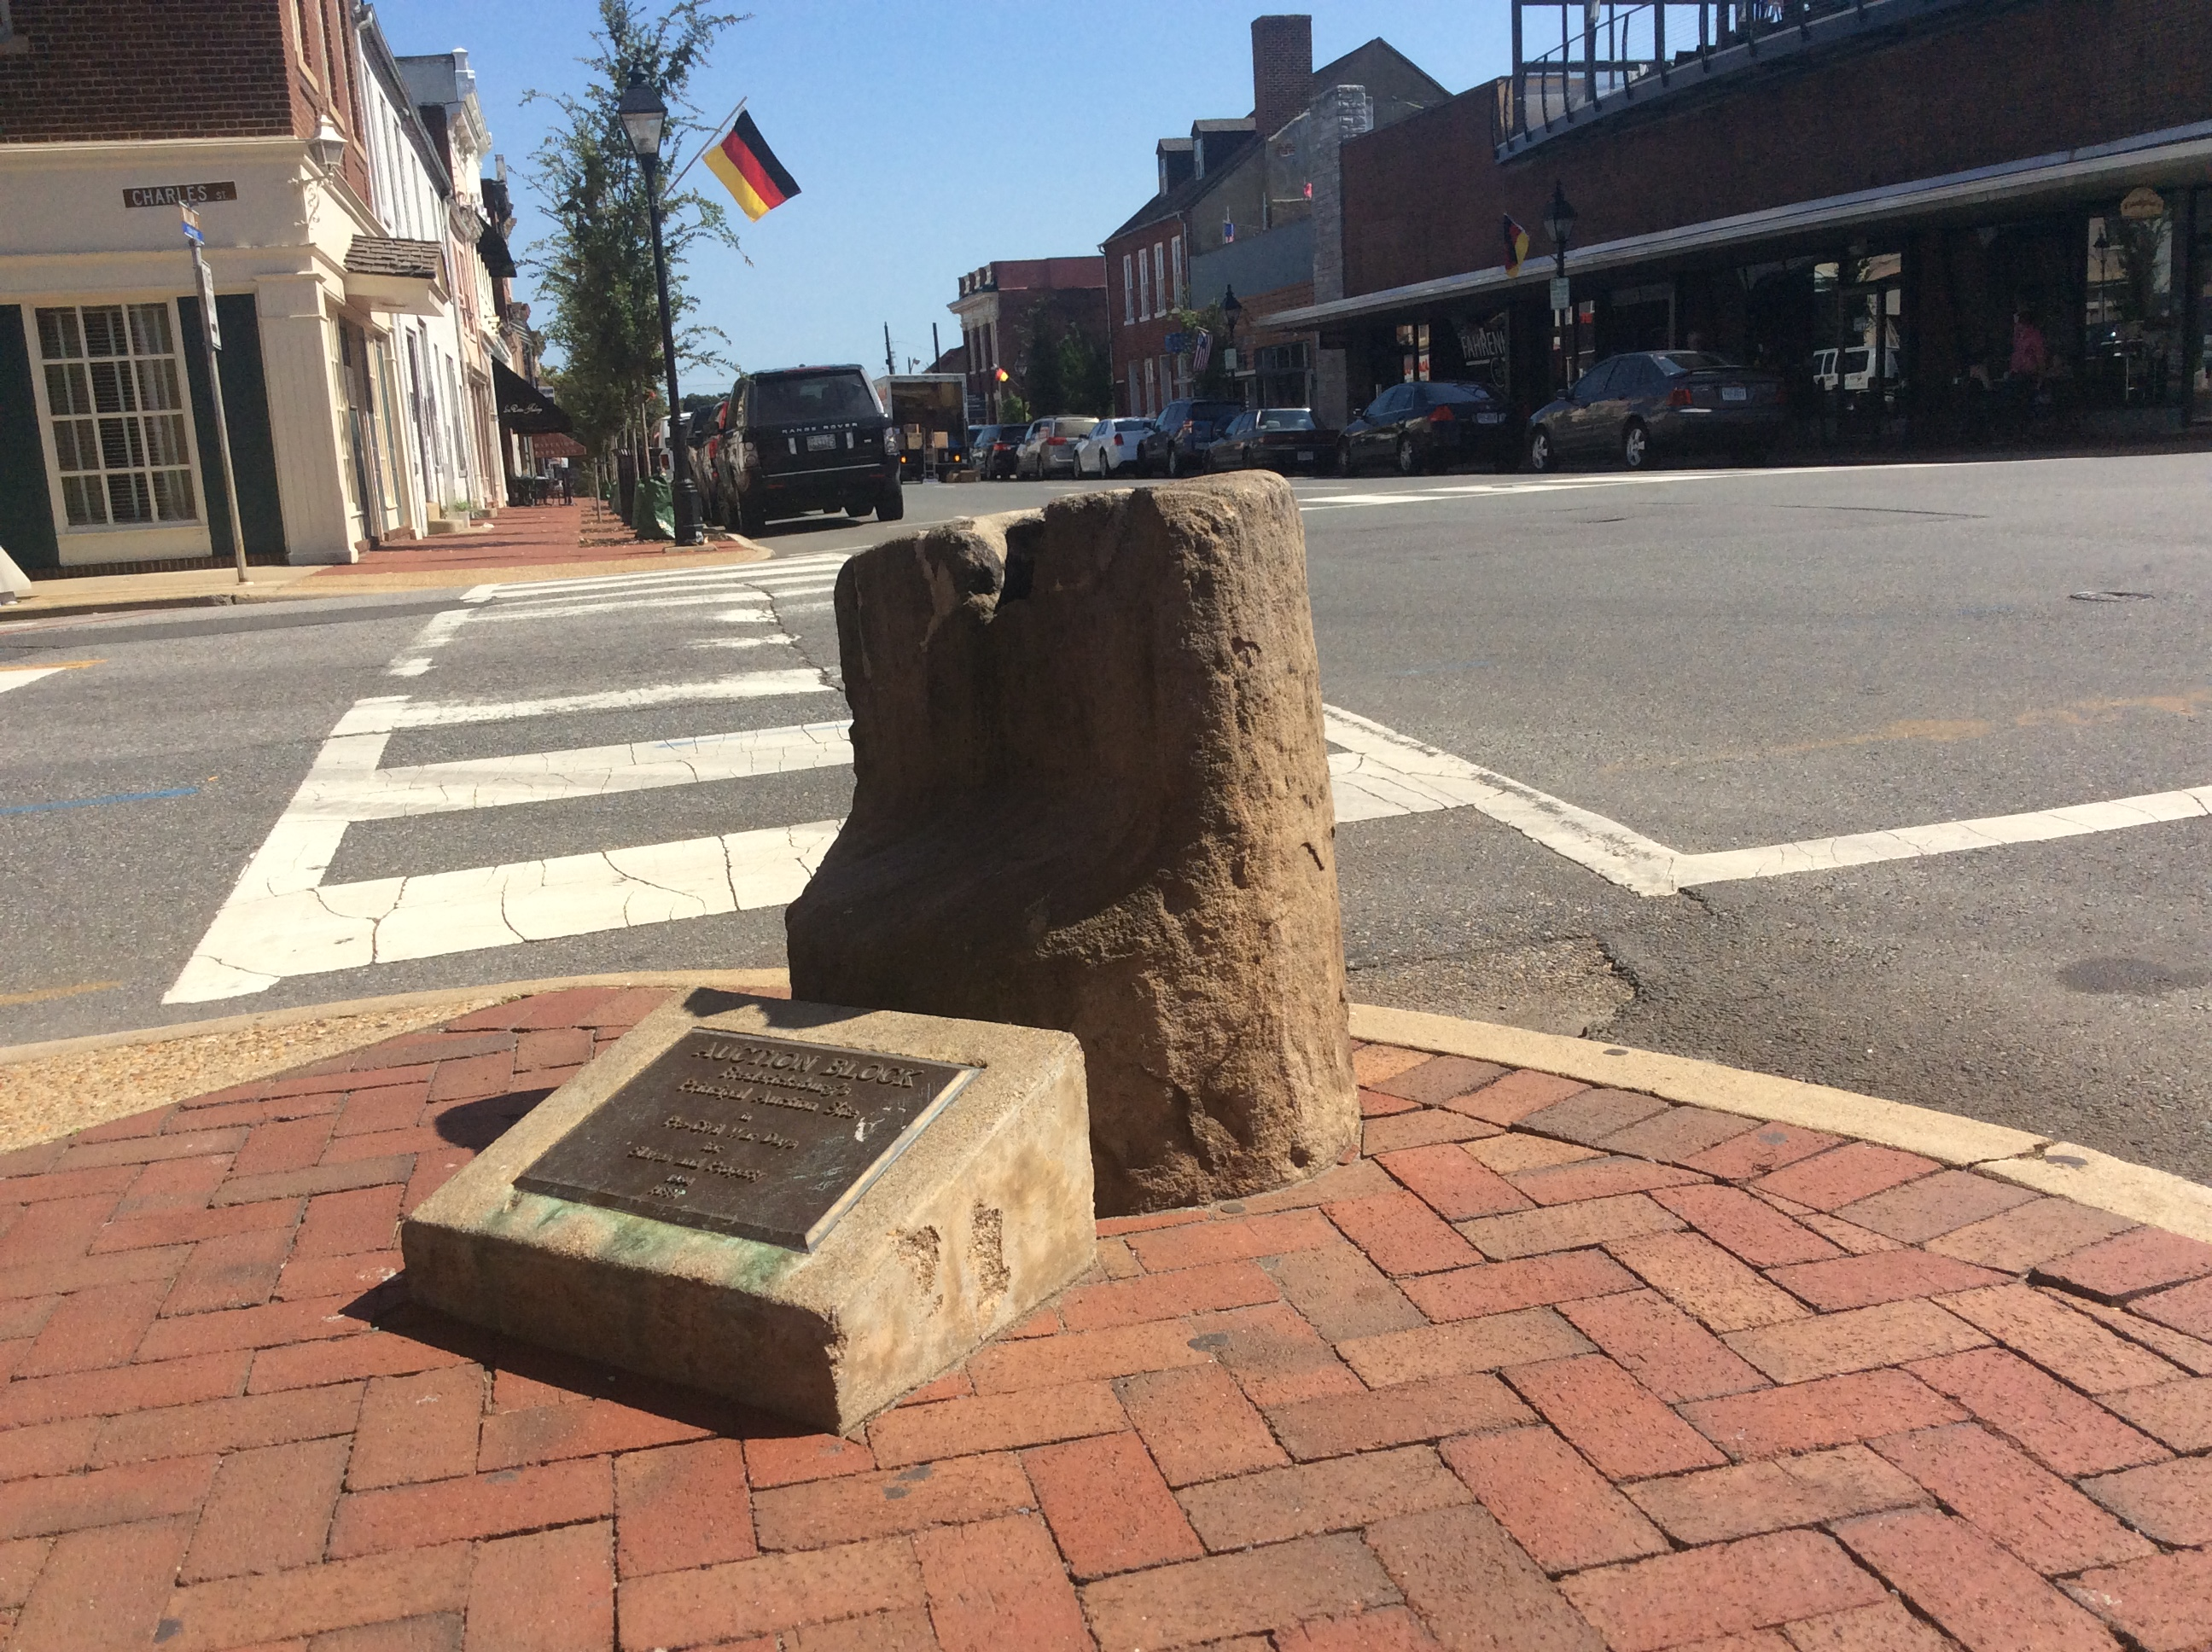 Appeal filed against moving the slave auction block in downtown Fredericksburg